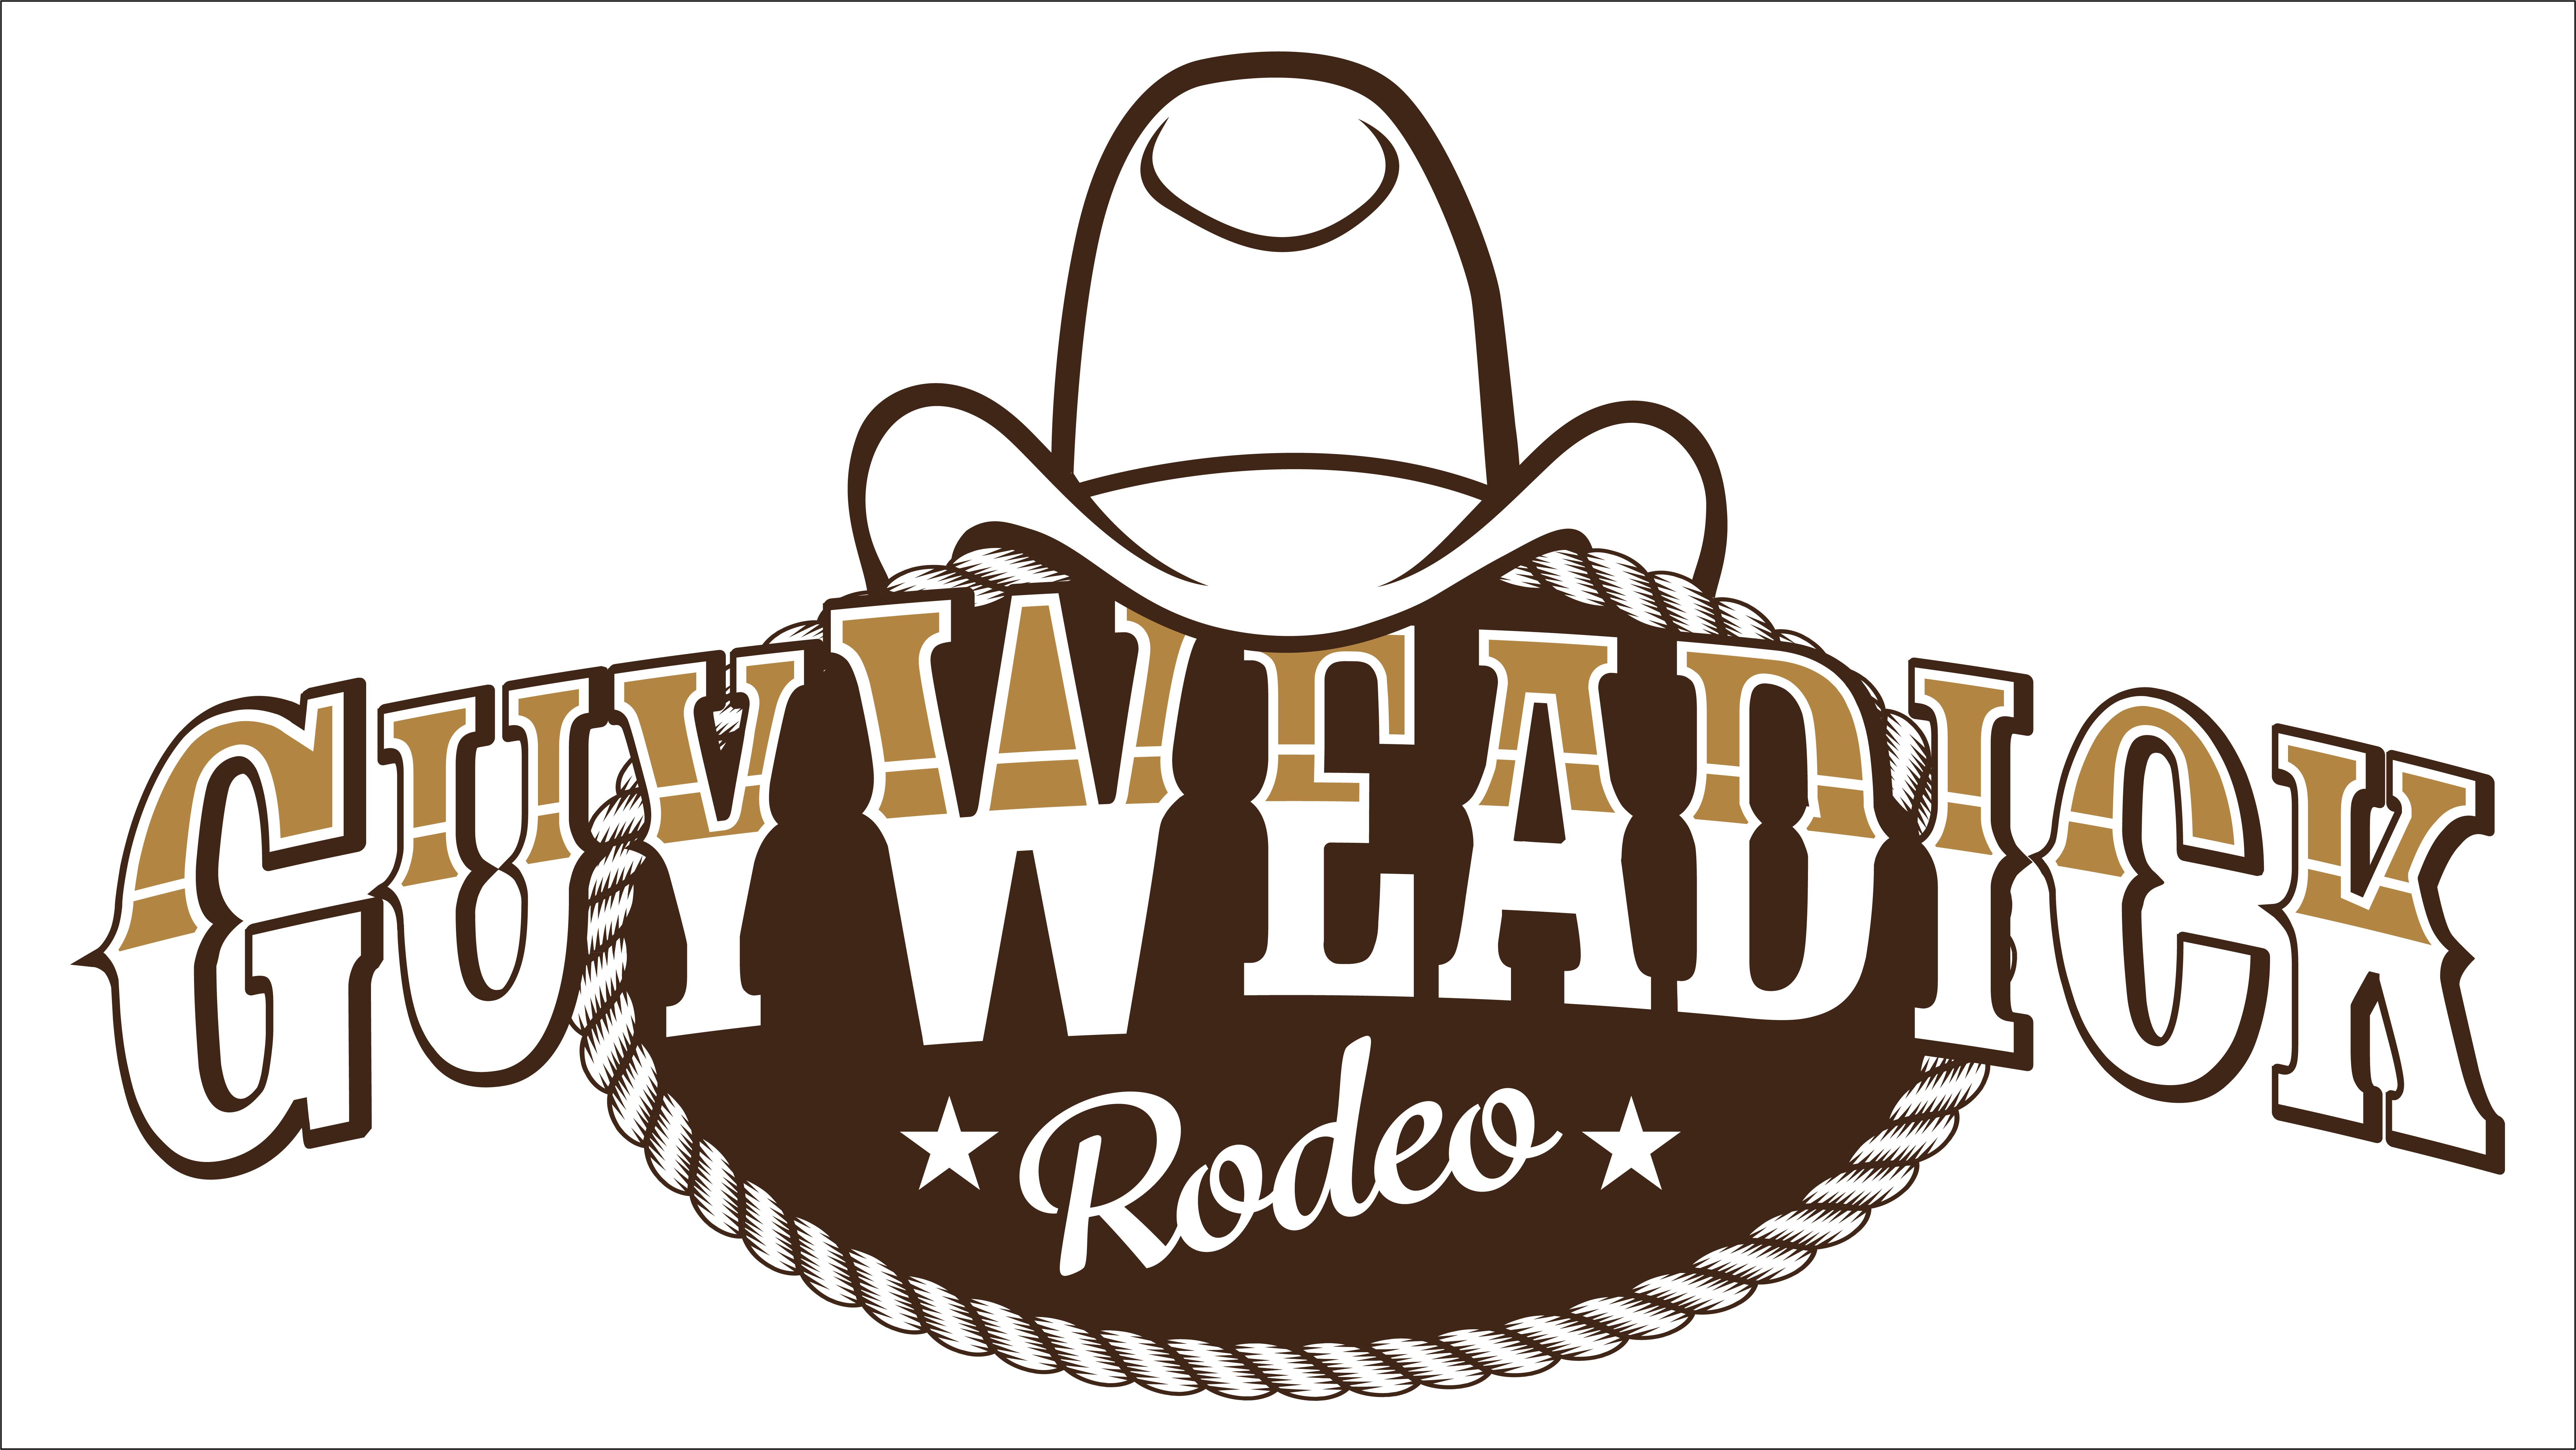 Guy Weadick Rodeo - August 8th